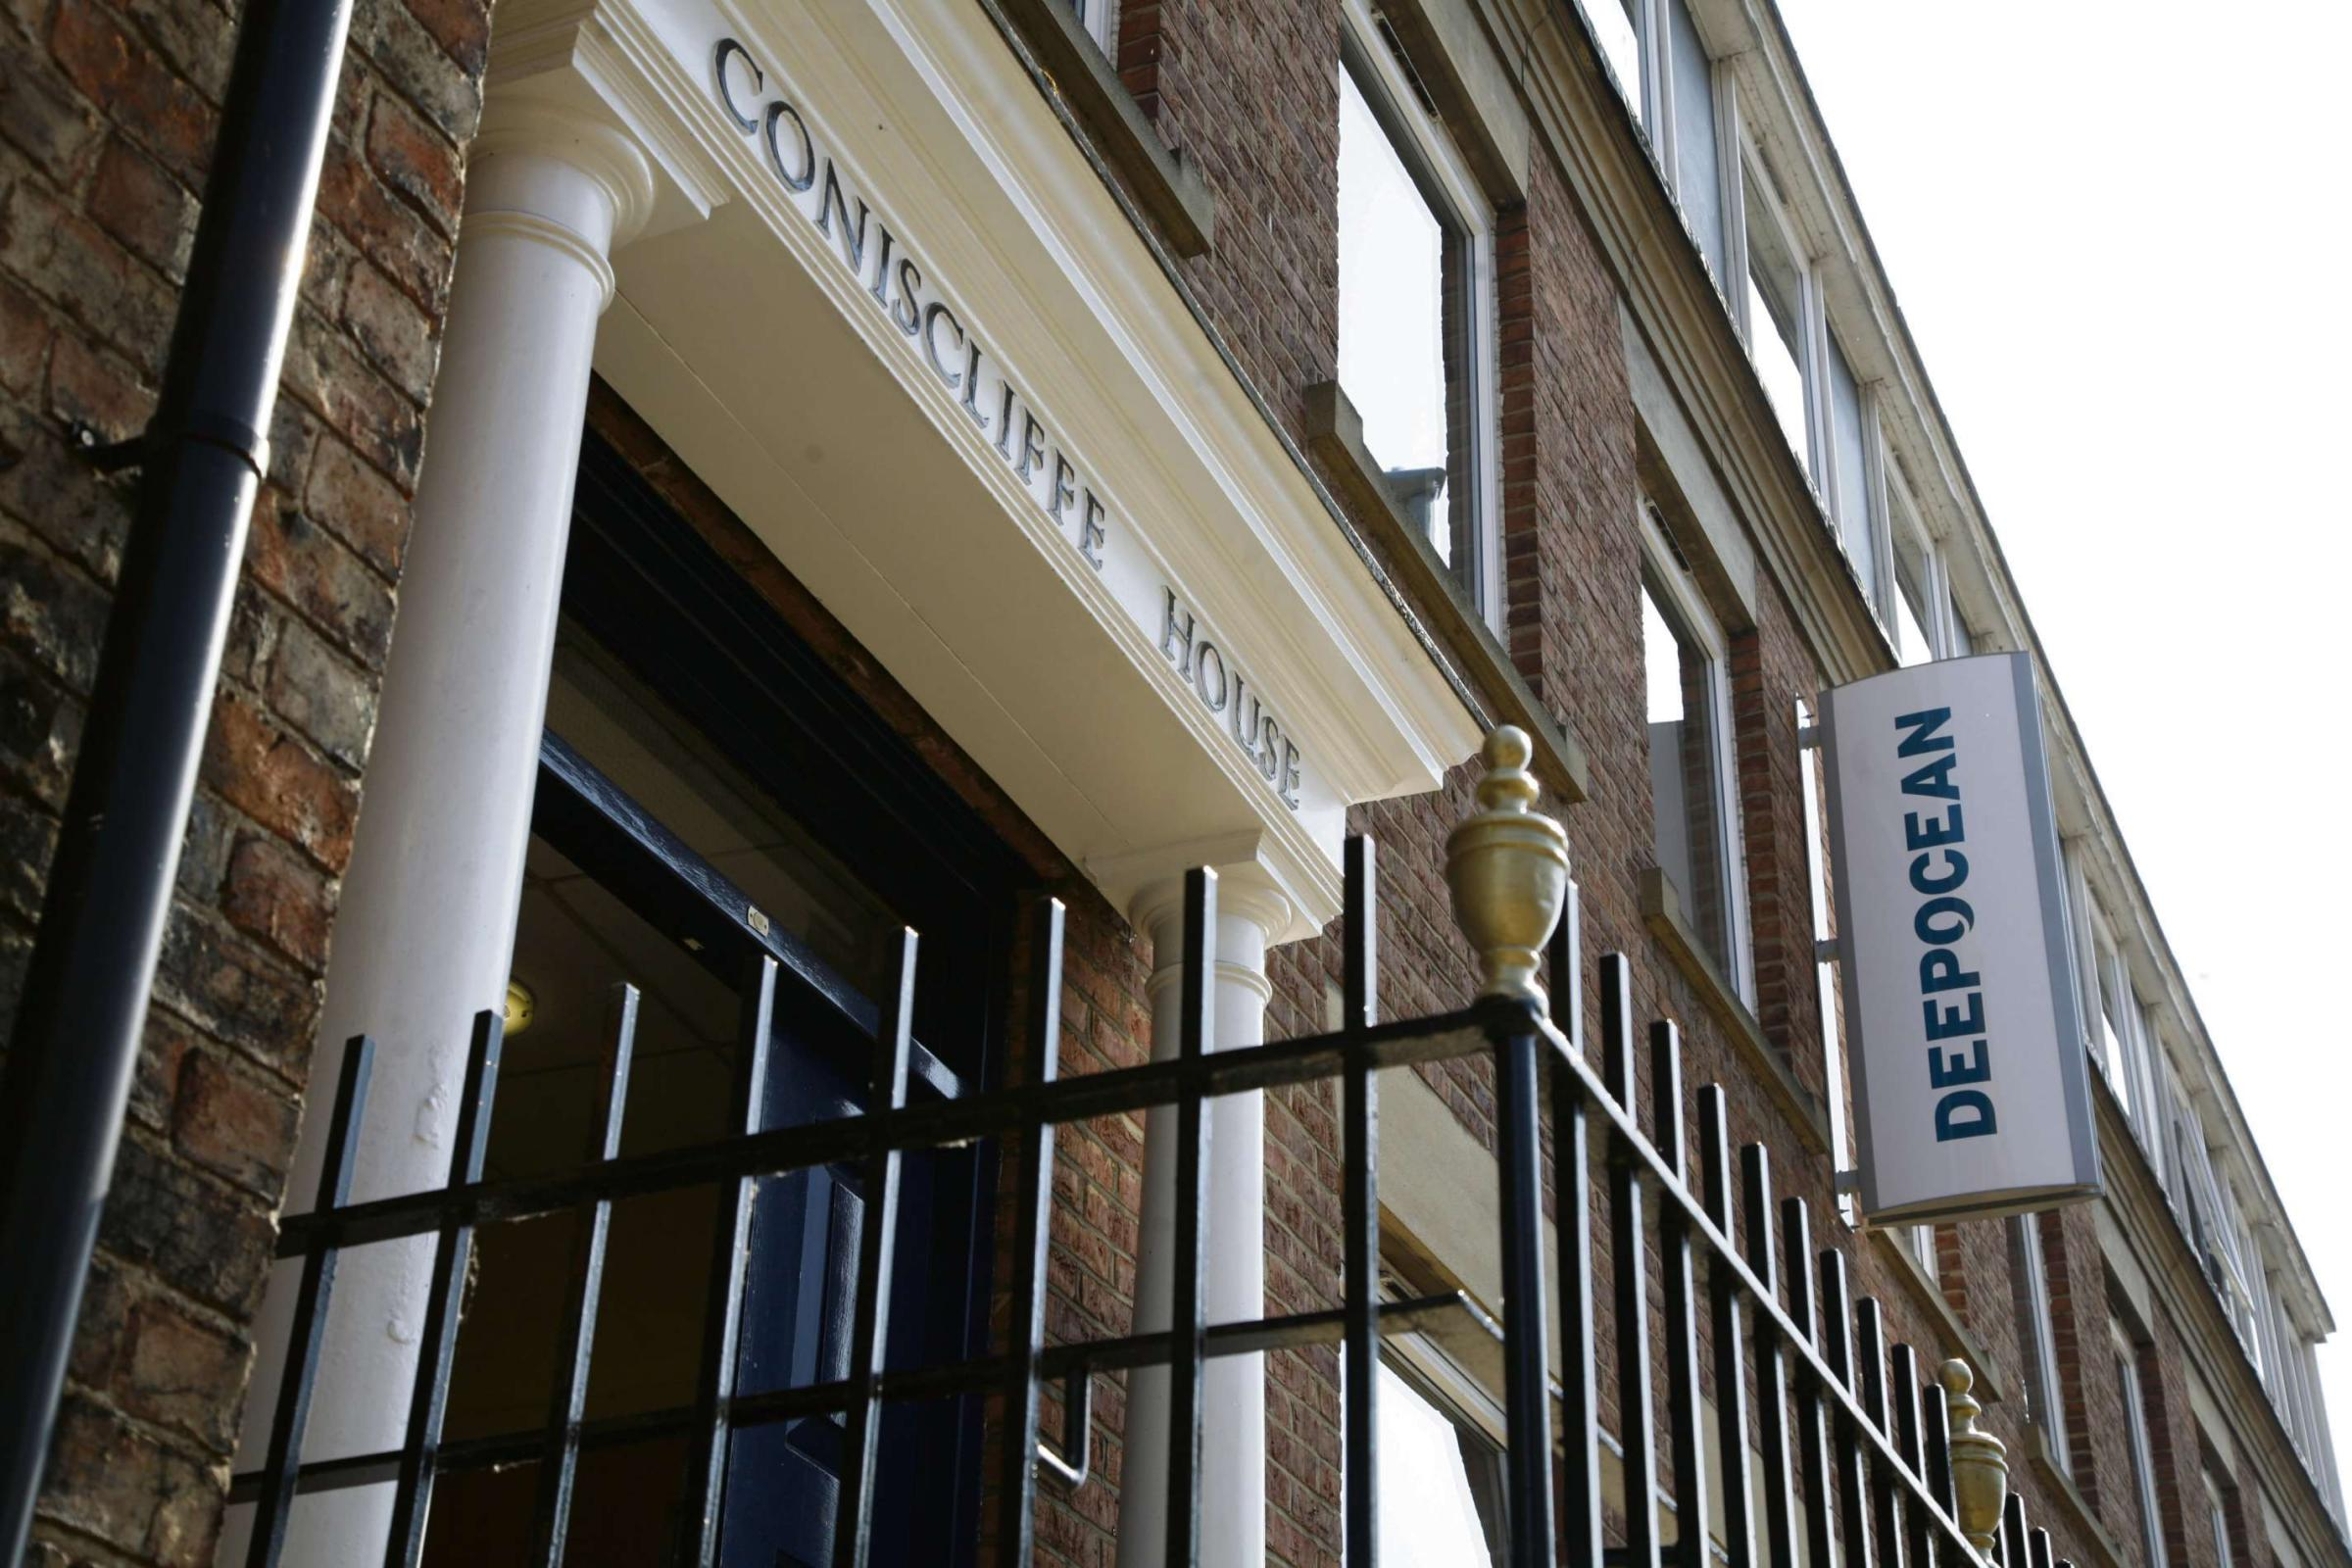 SUBSEA SUCCESS: DeepOcean UK's offices in Coniscliffe House, Darlington